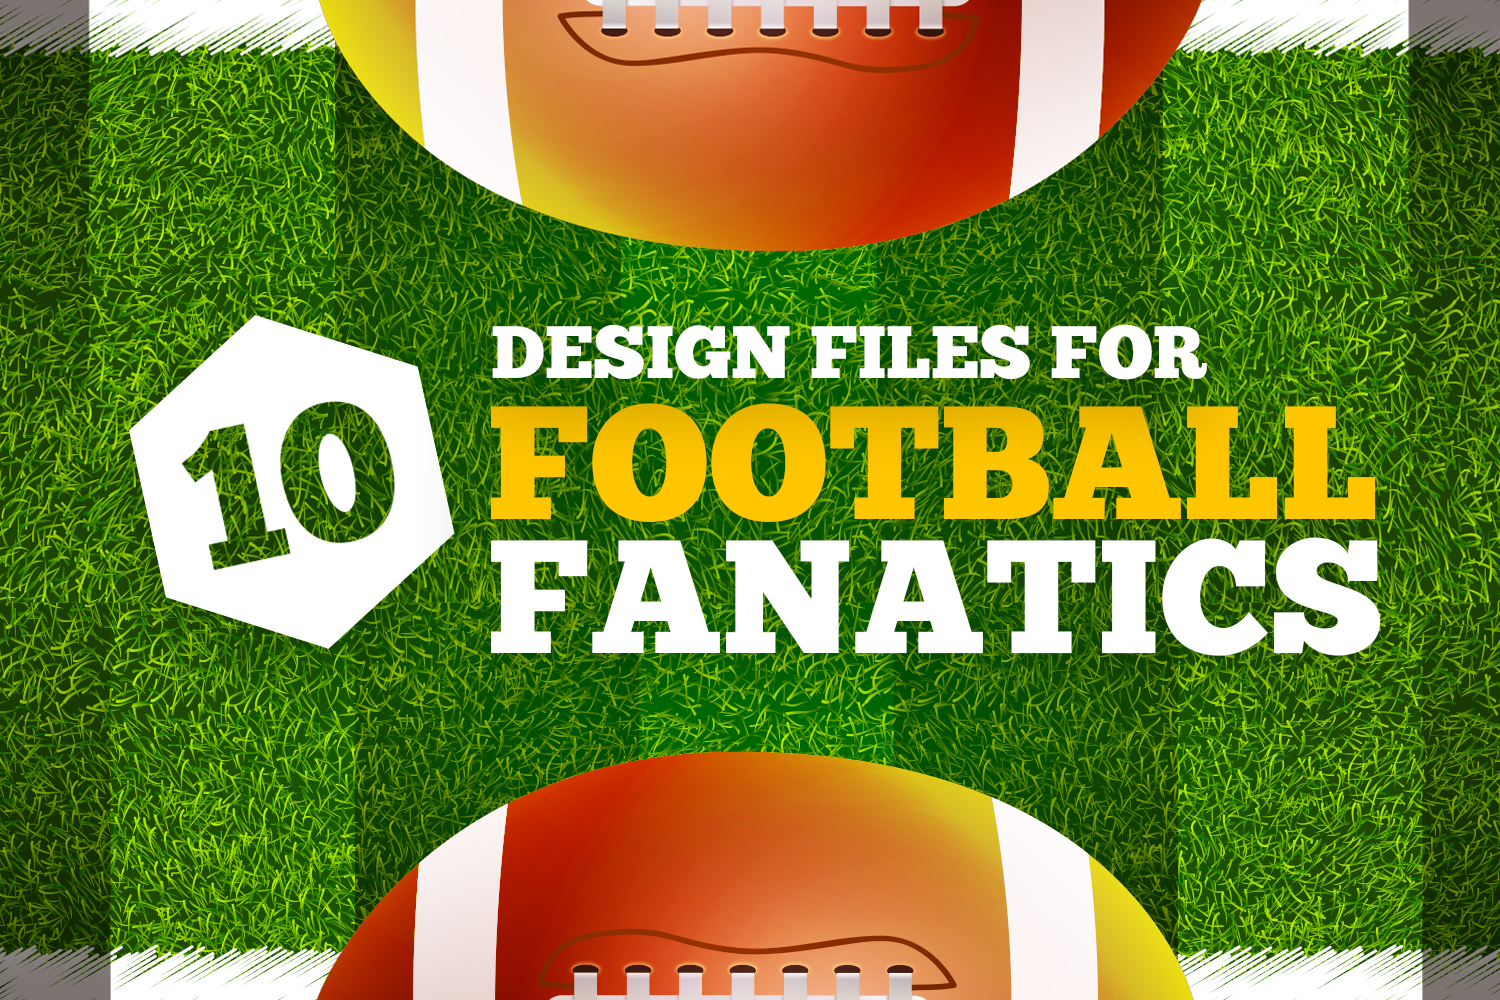 10 Design Files for Football Fanatics